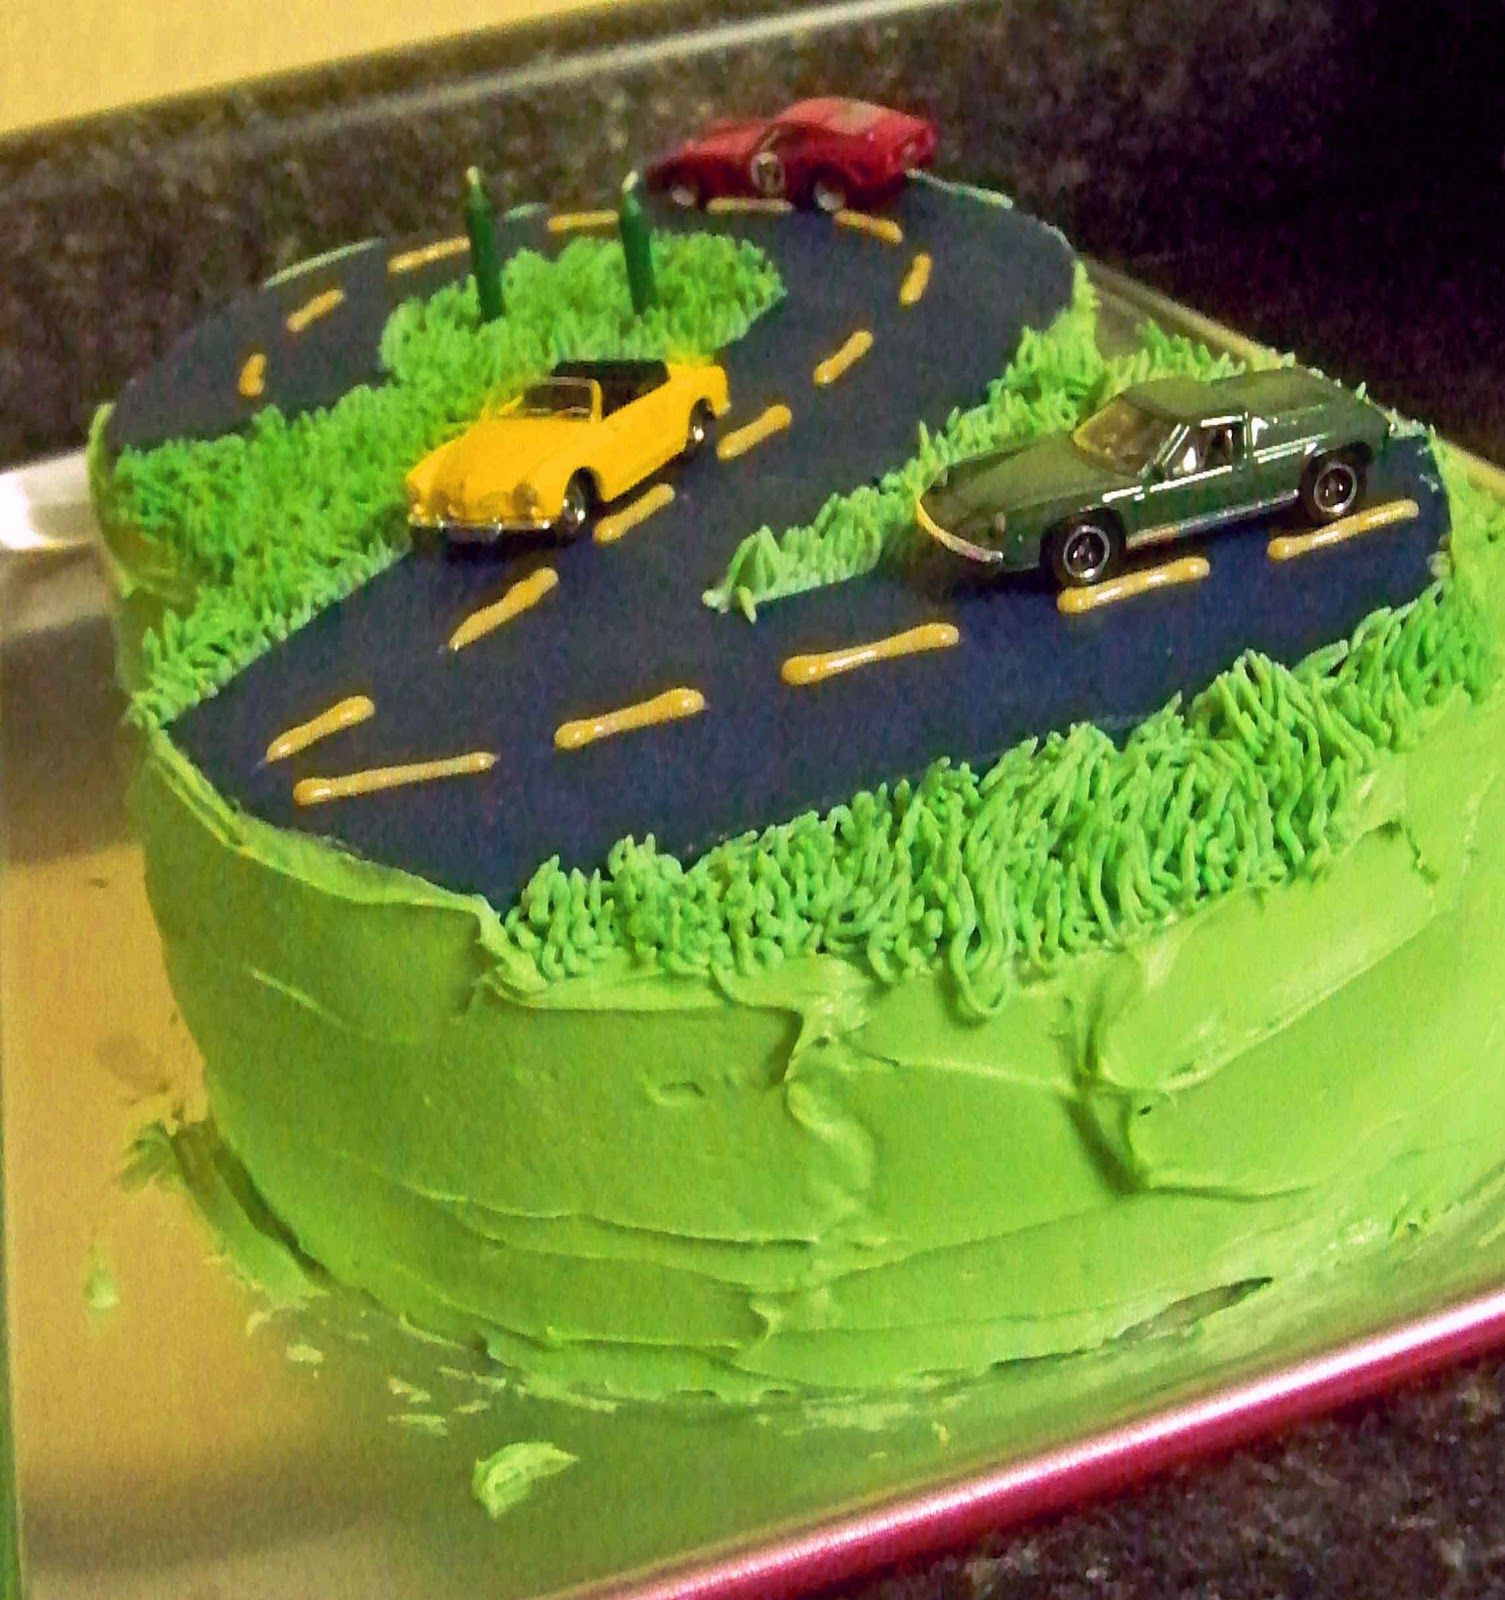 Awesome cake but not sure how it would look as a one boy car birthday cake good idea for mikeys birthday cakehe loves cars baditri Choice Image